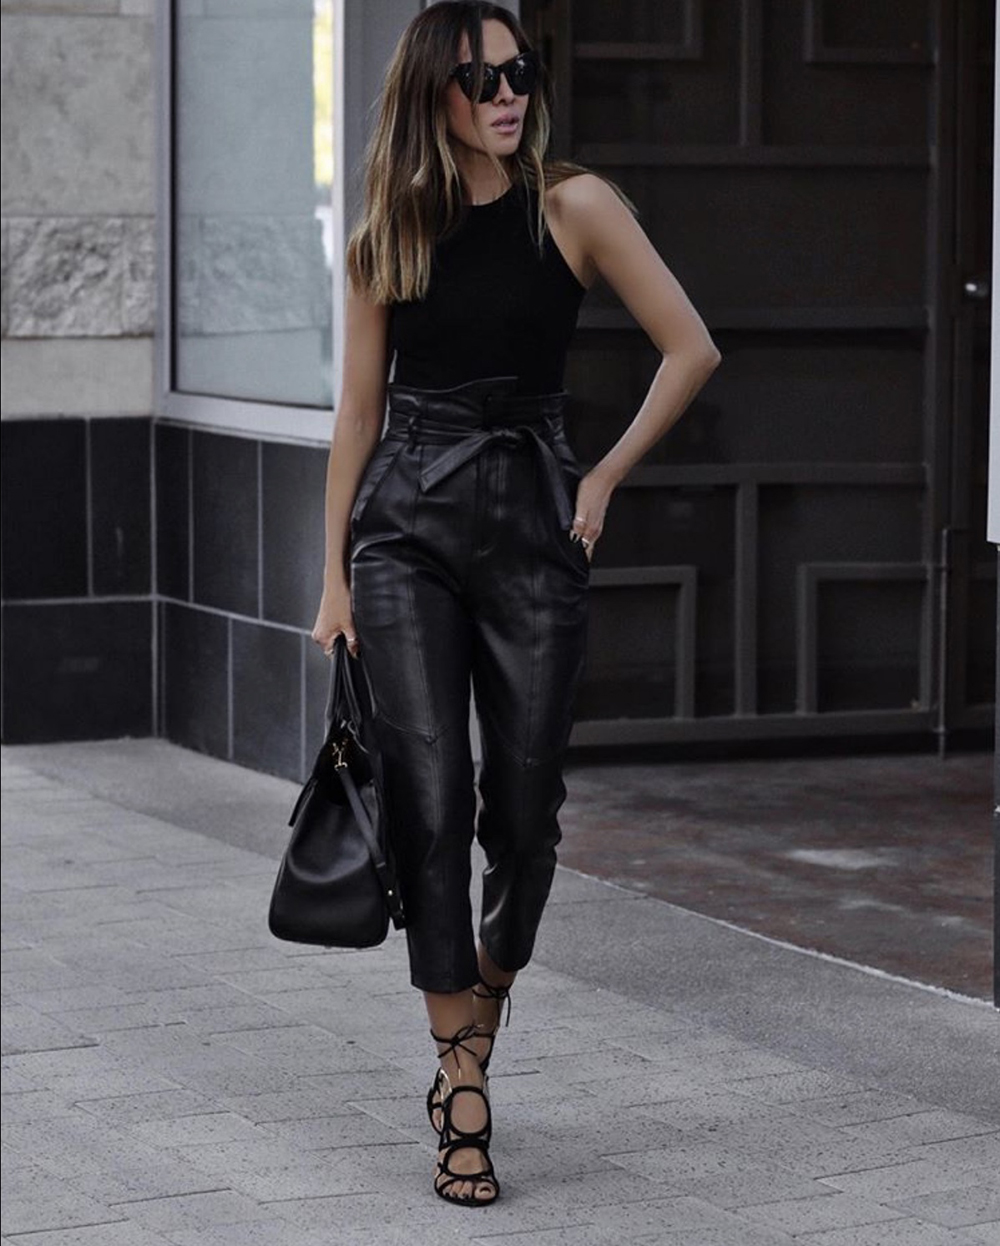 How to Dress Up An All Black Outfit, chic all black outfit, strappy heels, black paper bag pants, leather trousers | lolario style